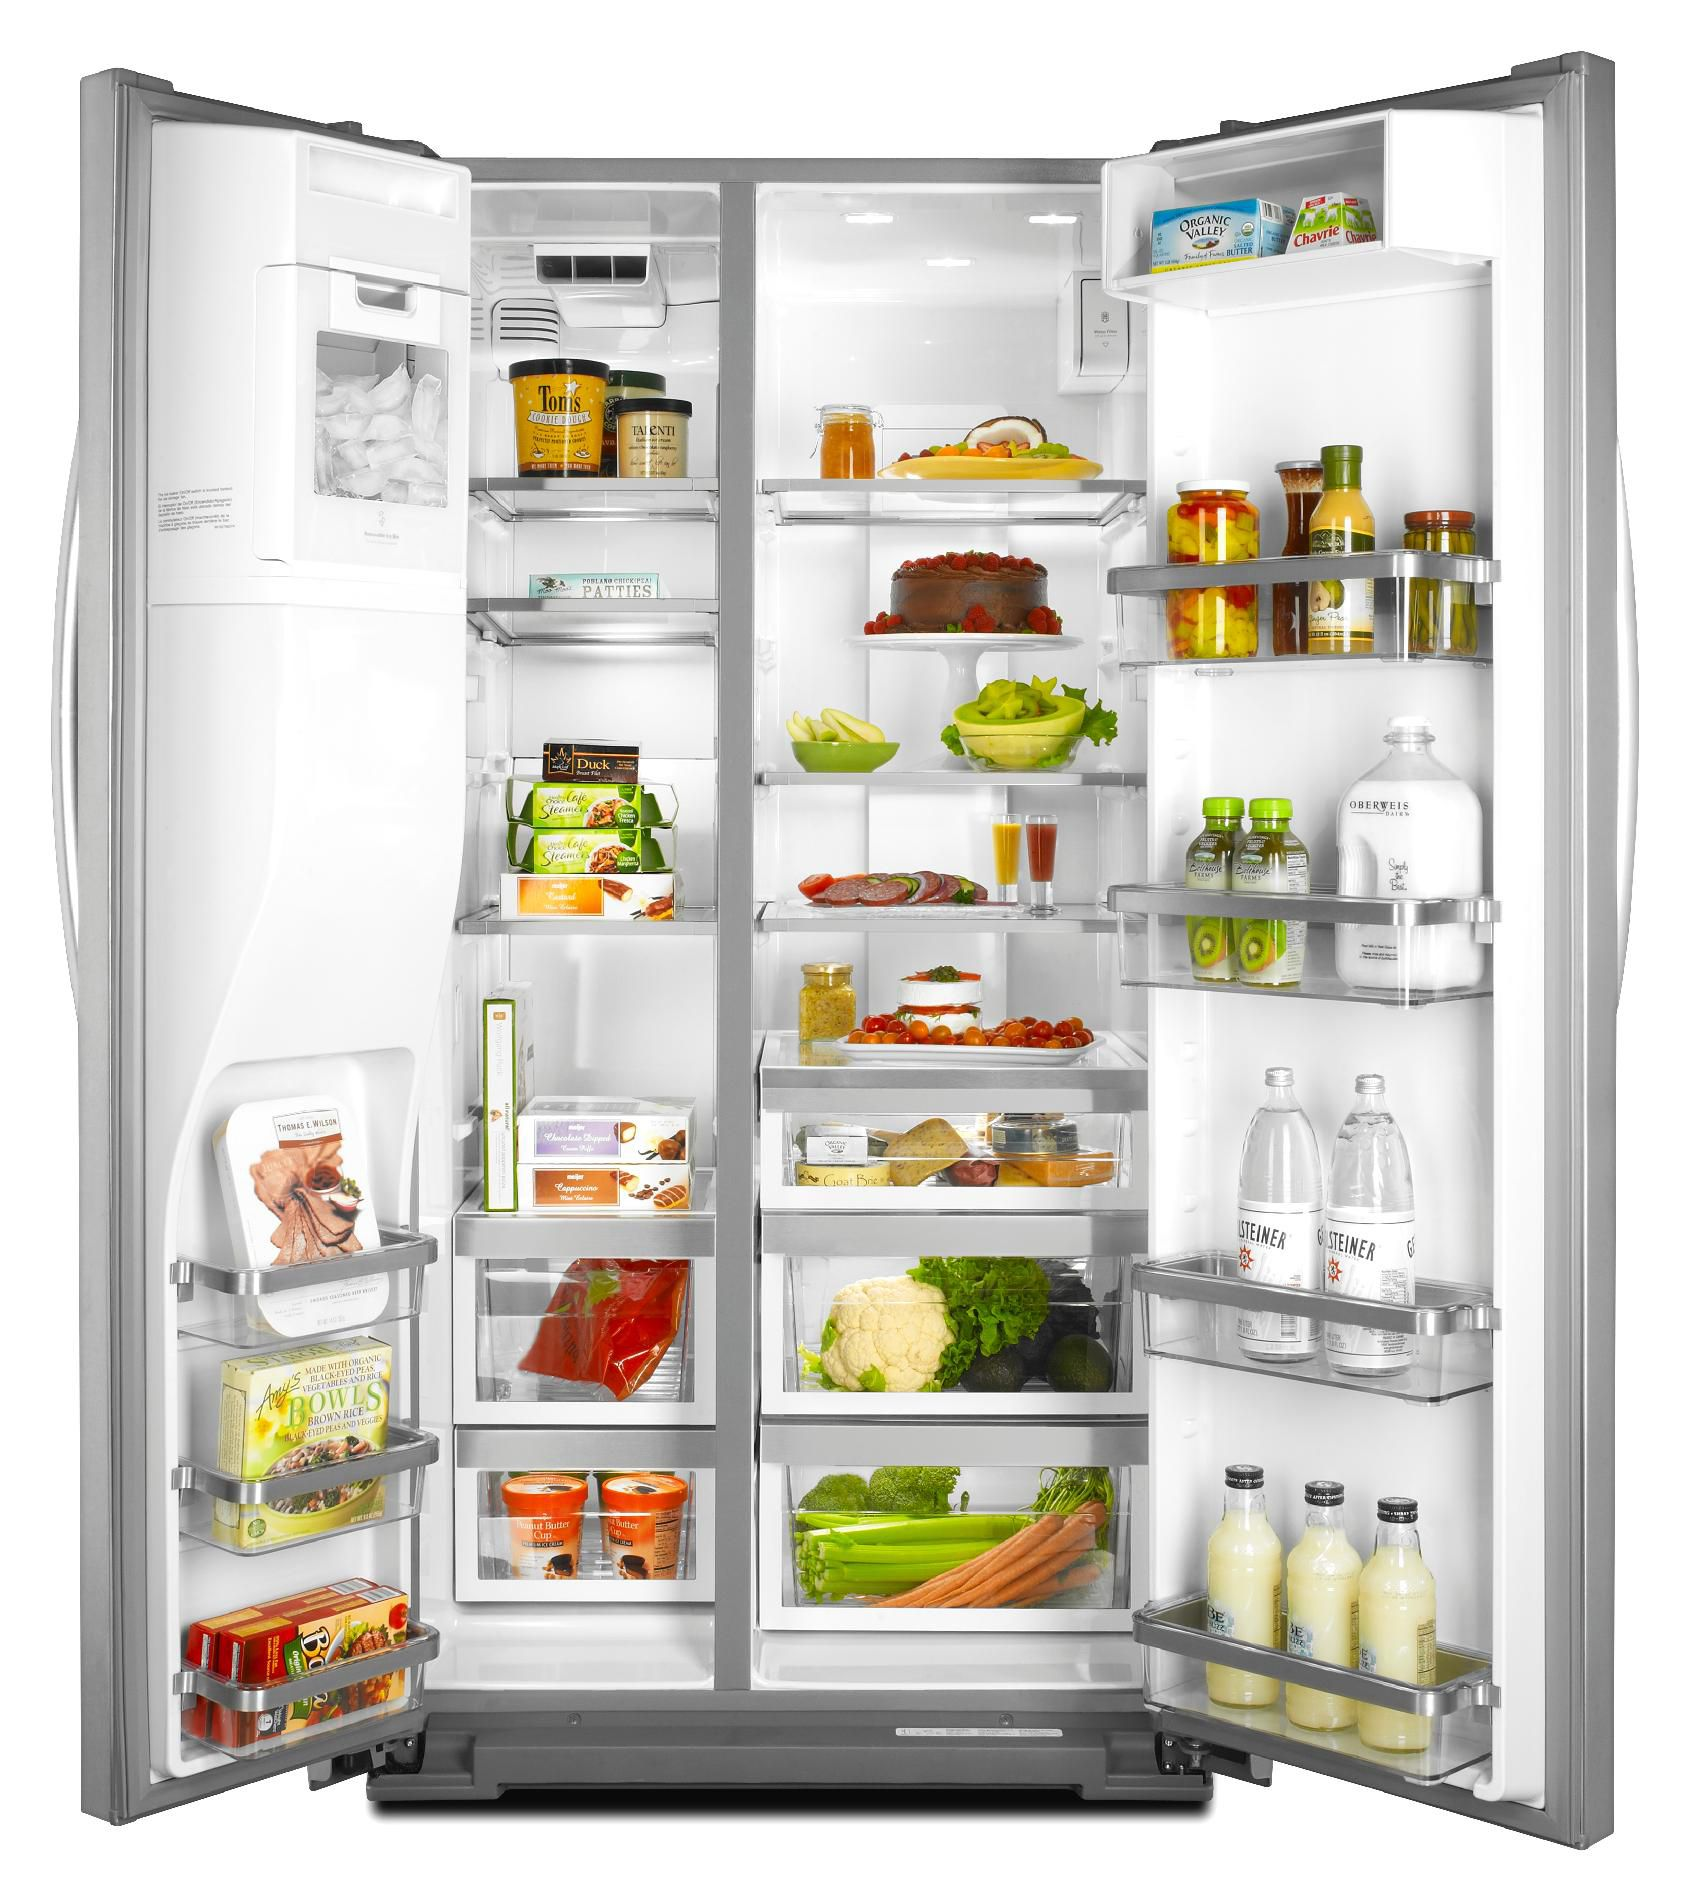 KitchenAid 24 cu. ft. Counter-Depth Side-by-Side Refrigerator